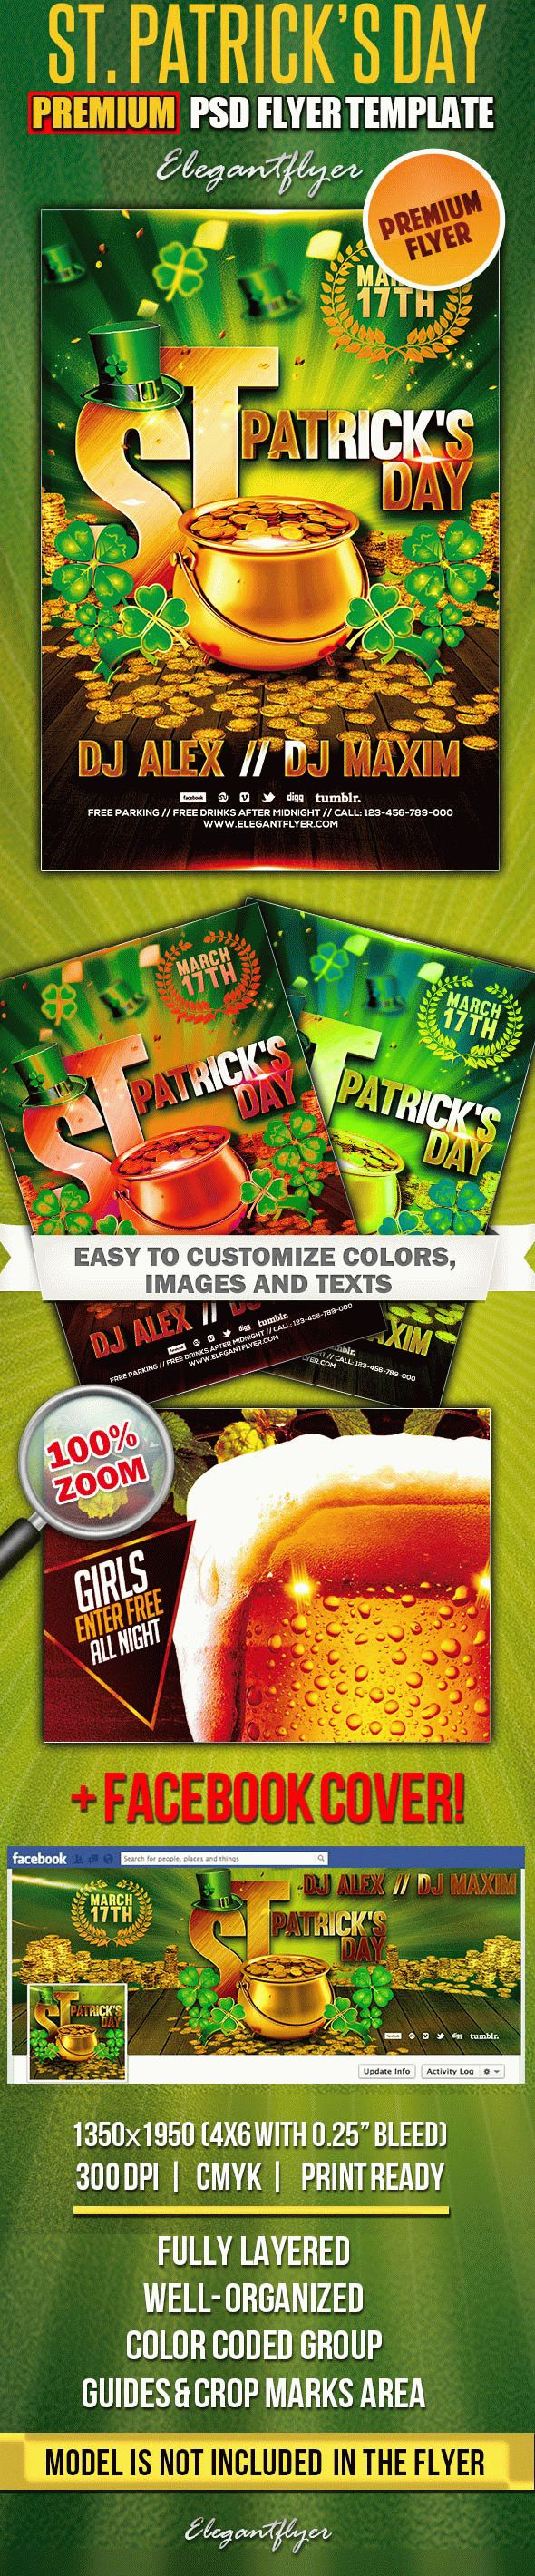 st  patrick u2019s day  u2013 psd flyer templates  u2013 by elegantflyer